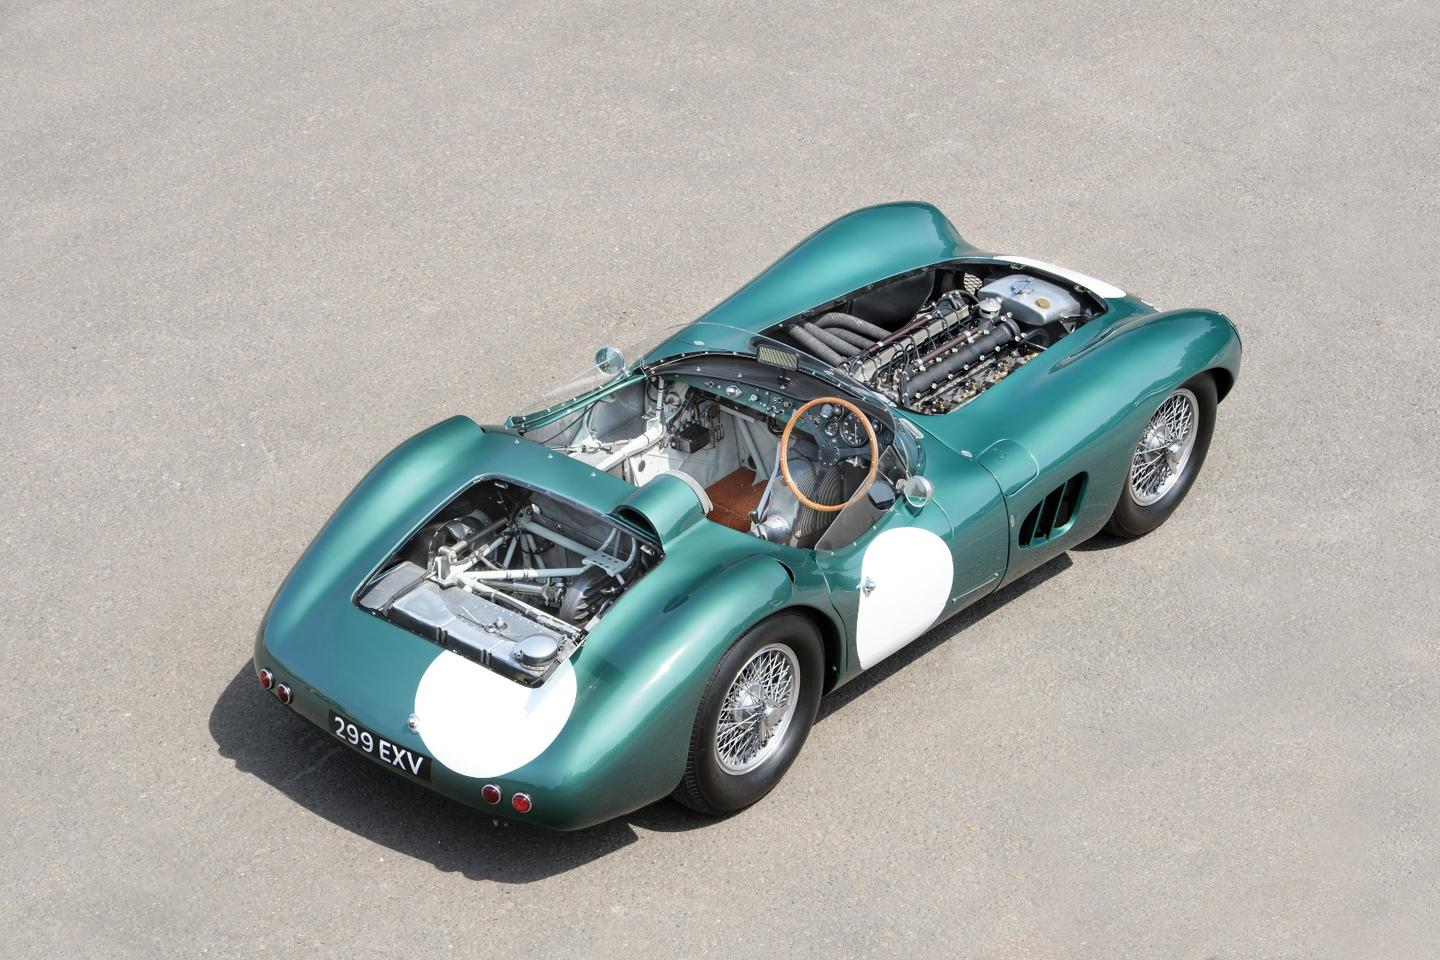 The Aston Martin DBR1 was the stand-out sportscar in the world in 1959, winningthe 24 Hour of Le Mans, the1000 km Nürburgring race and the 1959World Sportscar Championship. This car was the first one built.